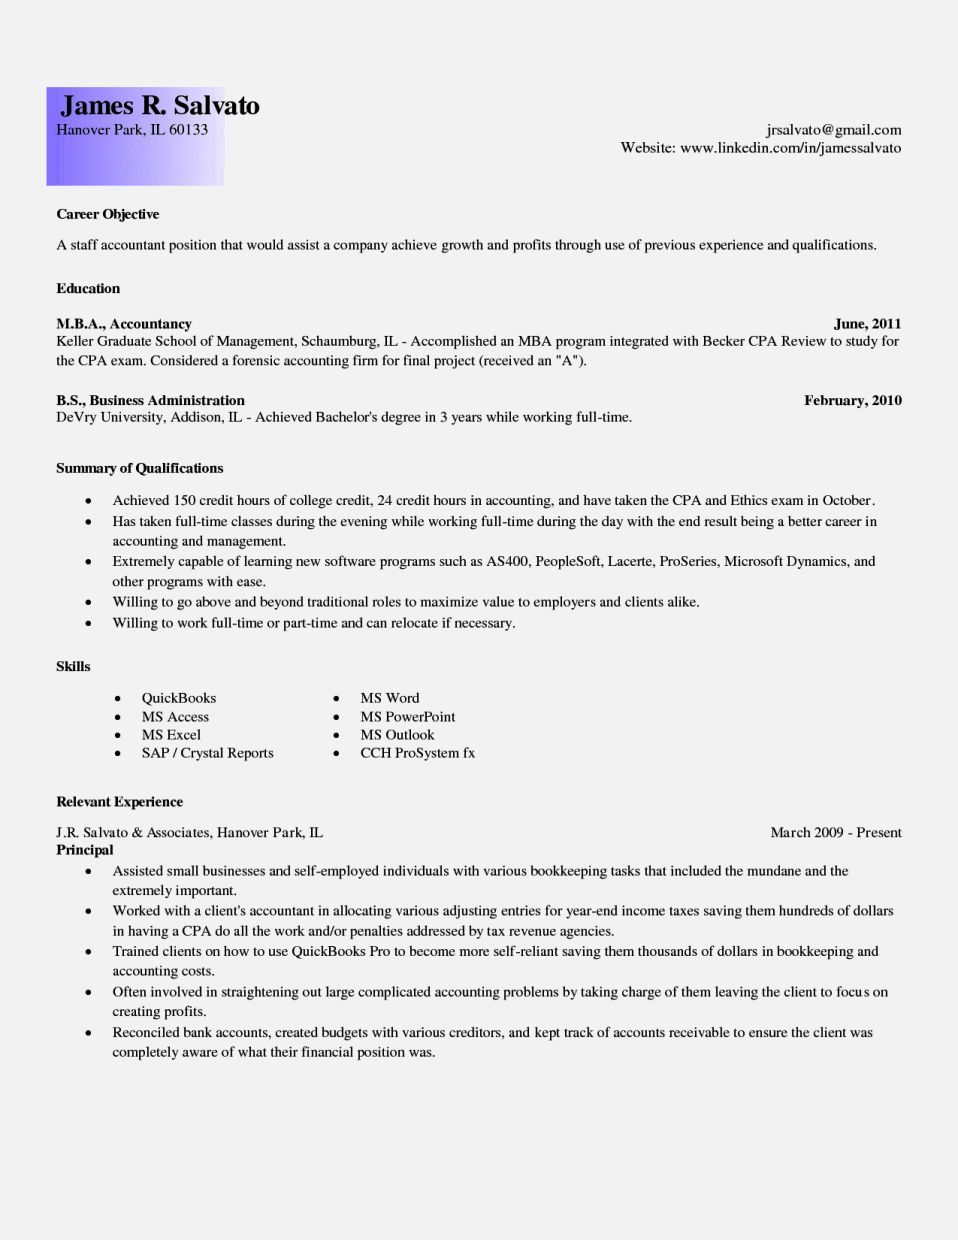 Entry Level Accounting Resumes Fascinating Httpinformationgateresumeletterentrylevelaccountant .